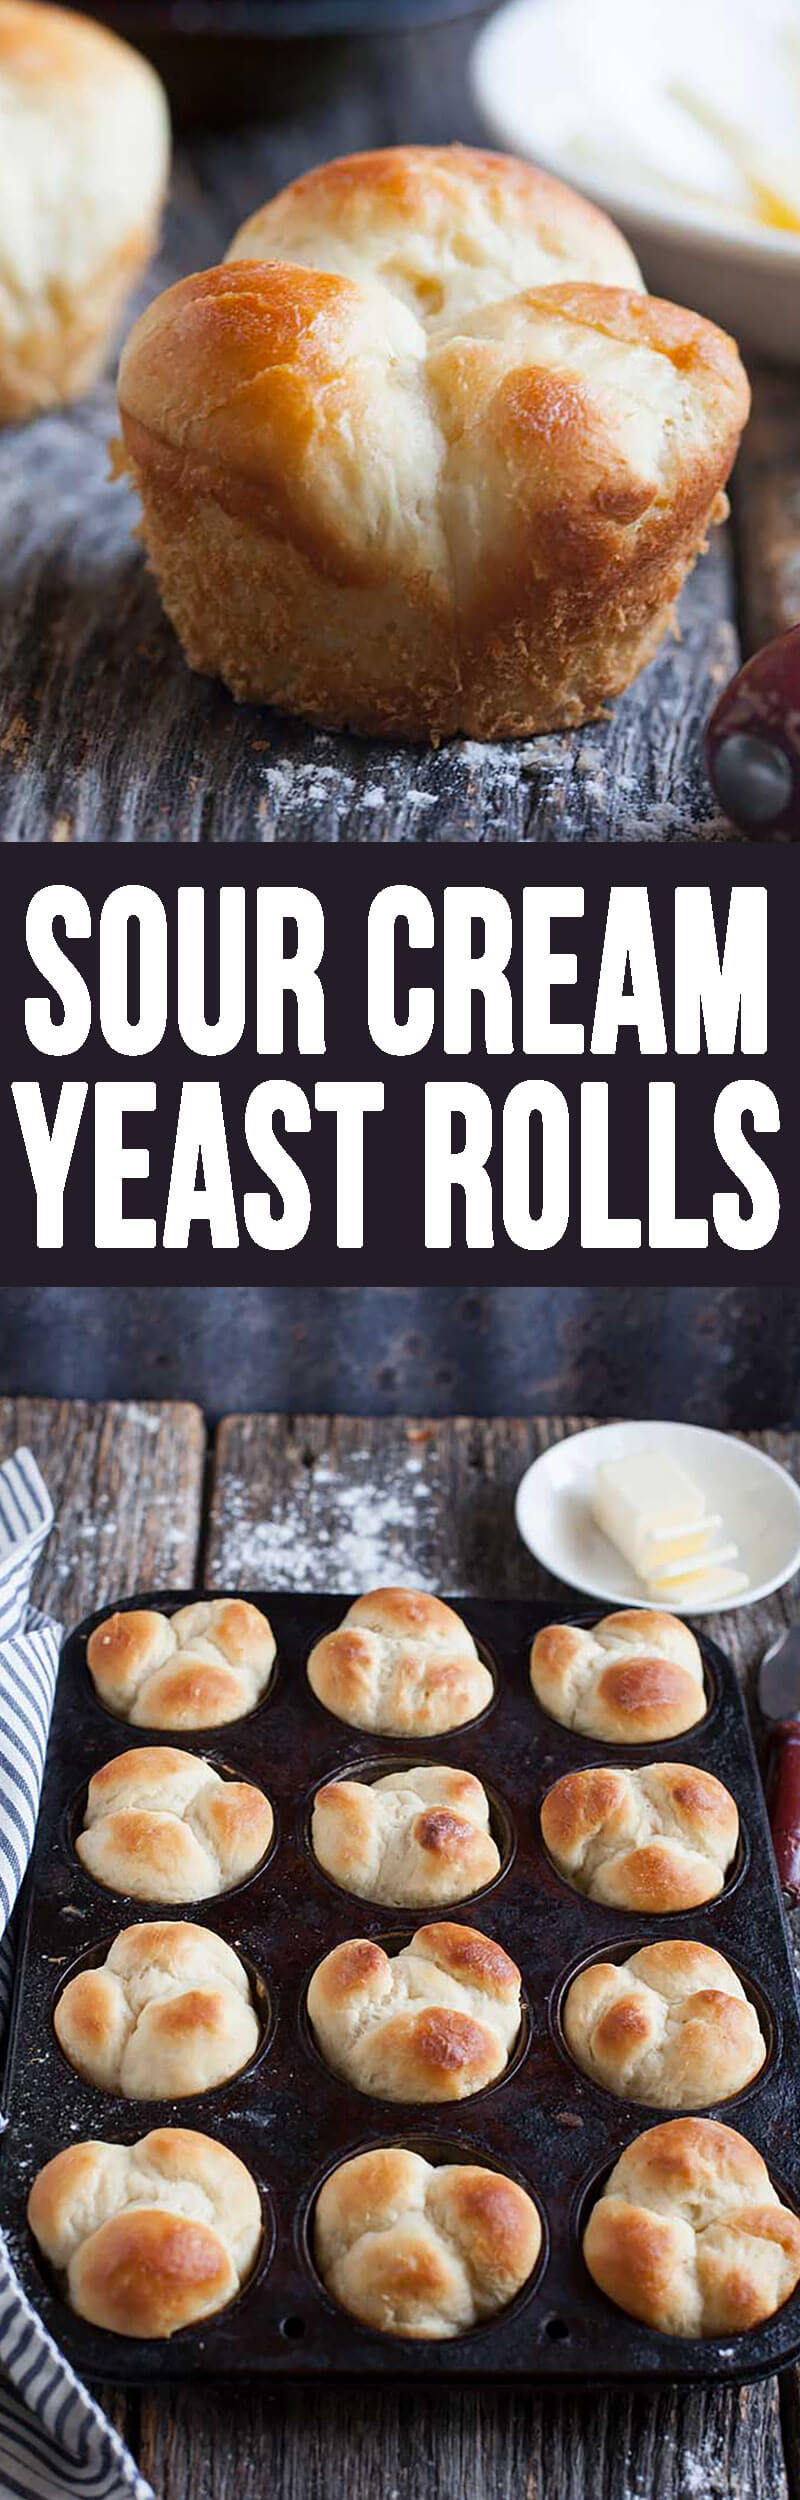 Sour Cream Yeast Rolls are excellent for Thanksgiving. These are tasty rolls.